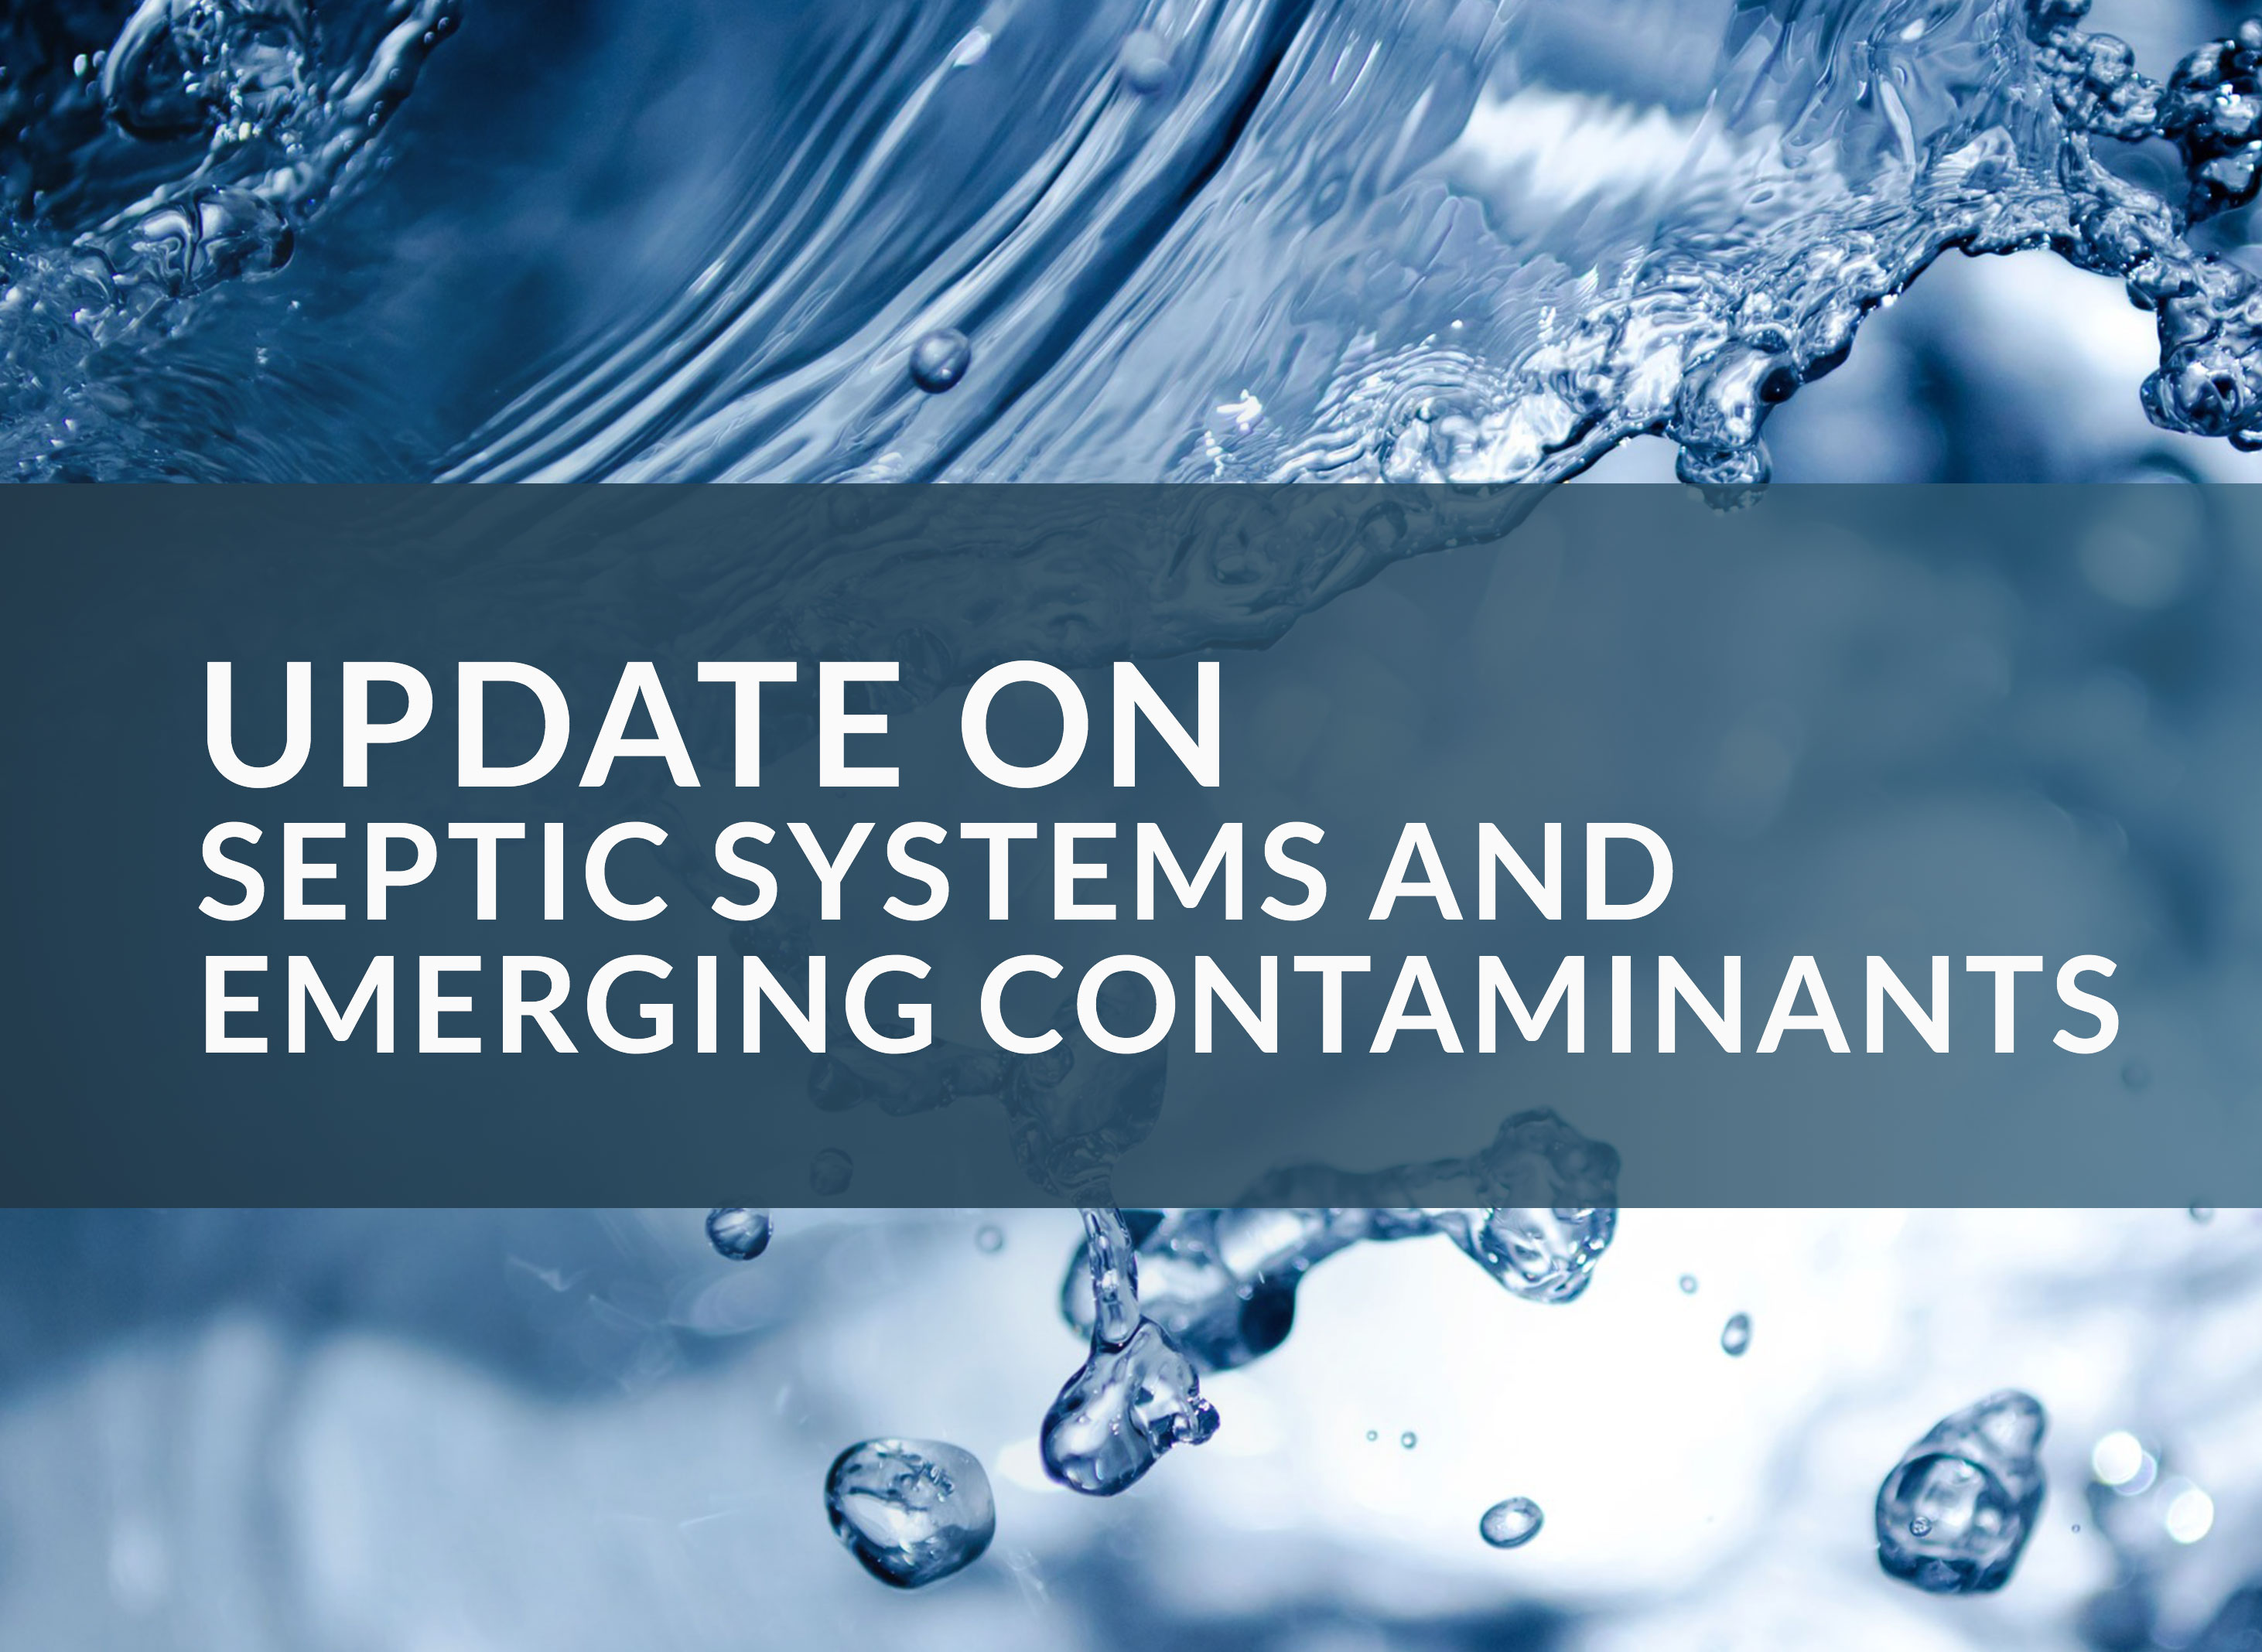 SEPTIC-SYSTEM-EMERGING-CONTAMINENTS